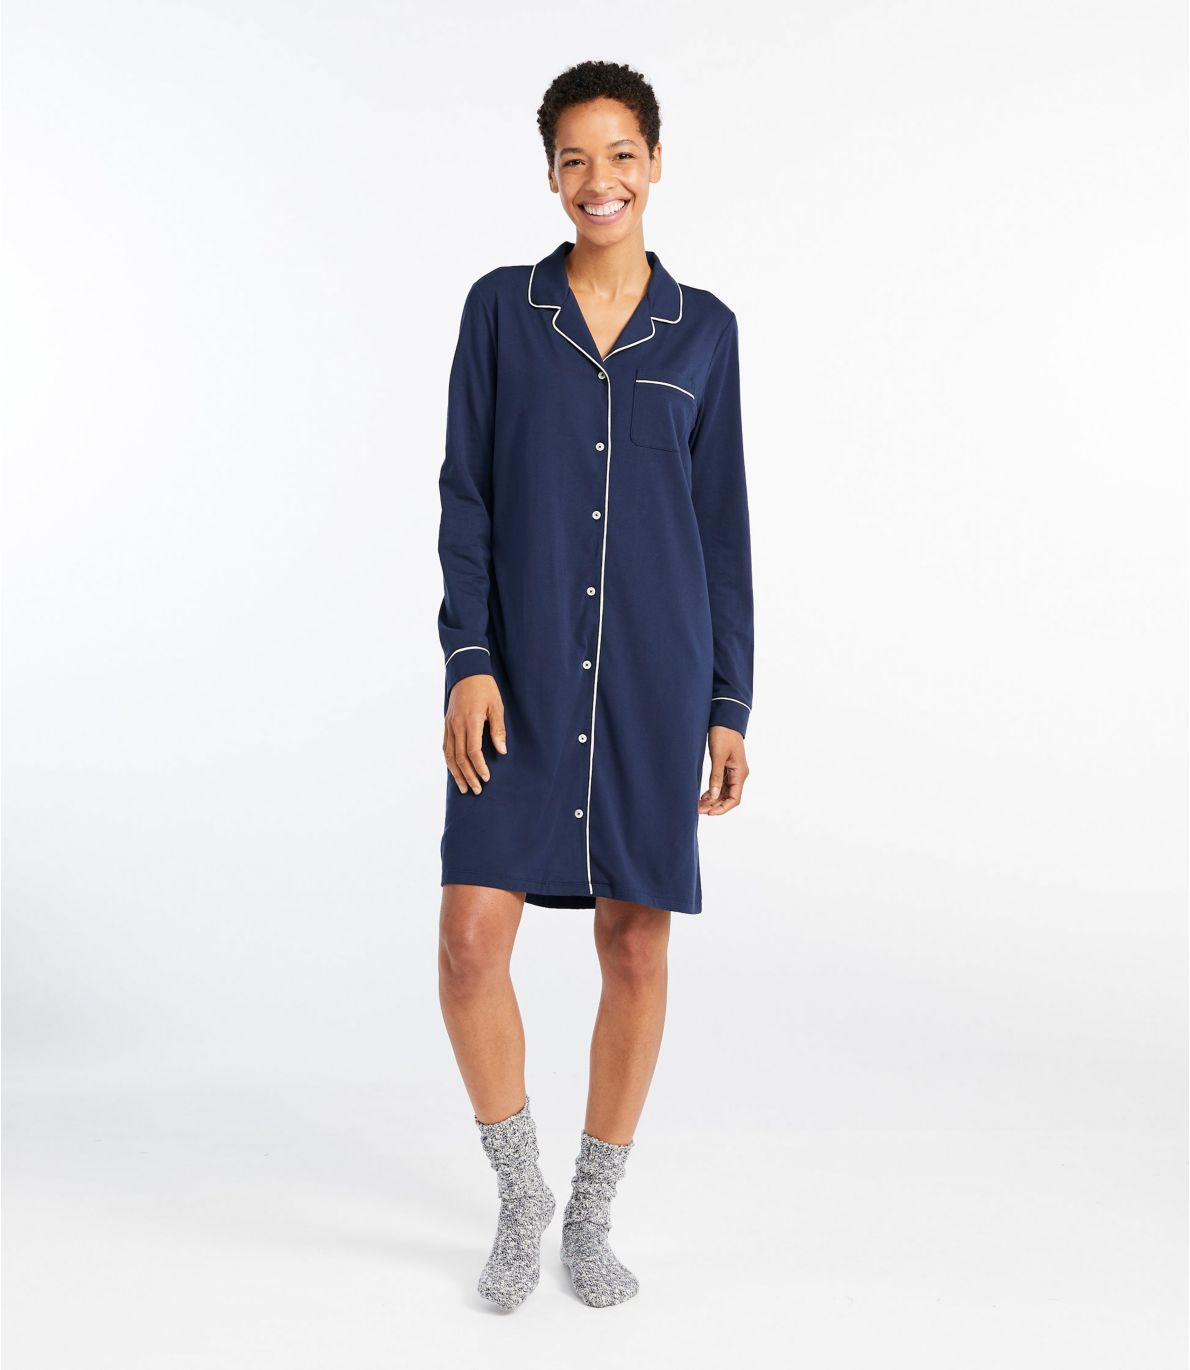 Women's Super-Soft Shrink-Free Nightgown, Button-Front